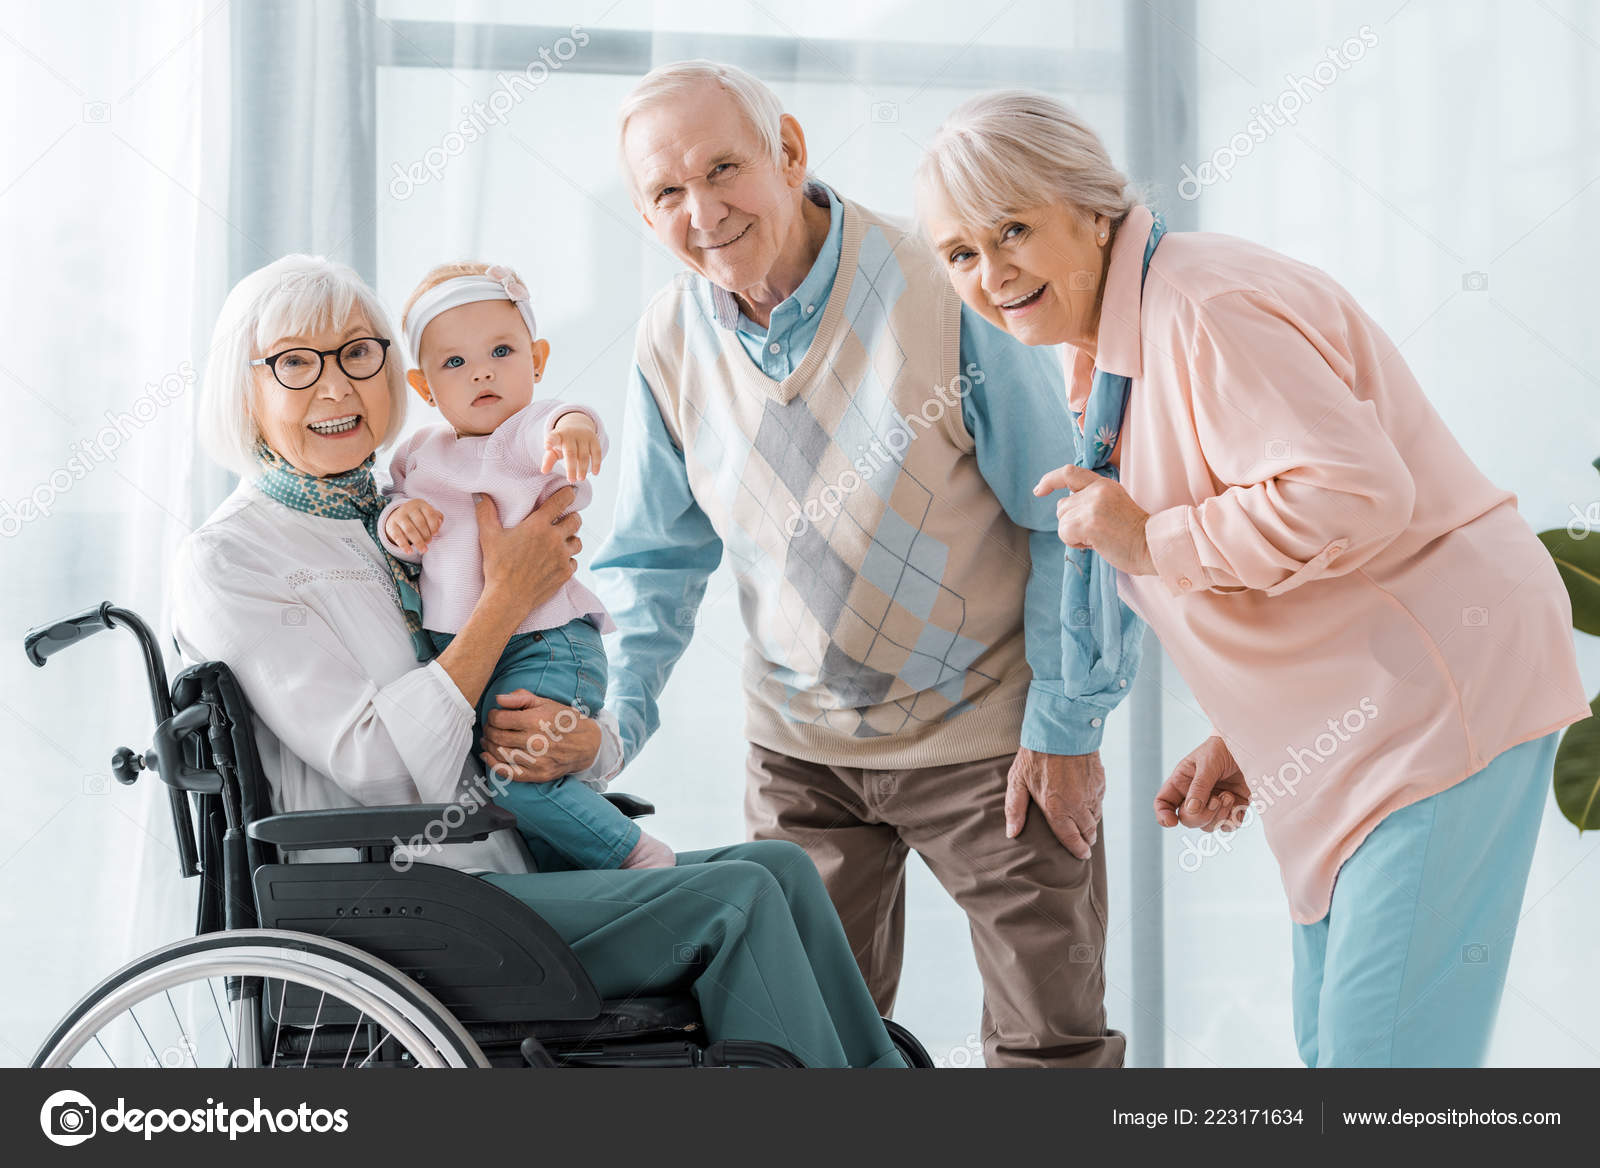 Happy Senior People Toddler Nursing Home Stock Photo C Andrewlozovyi 223171634